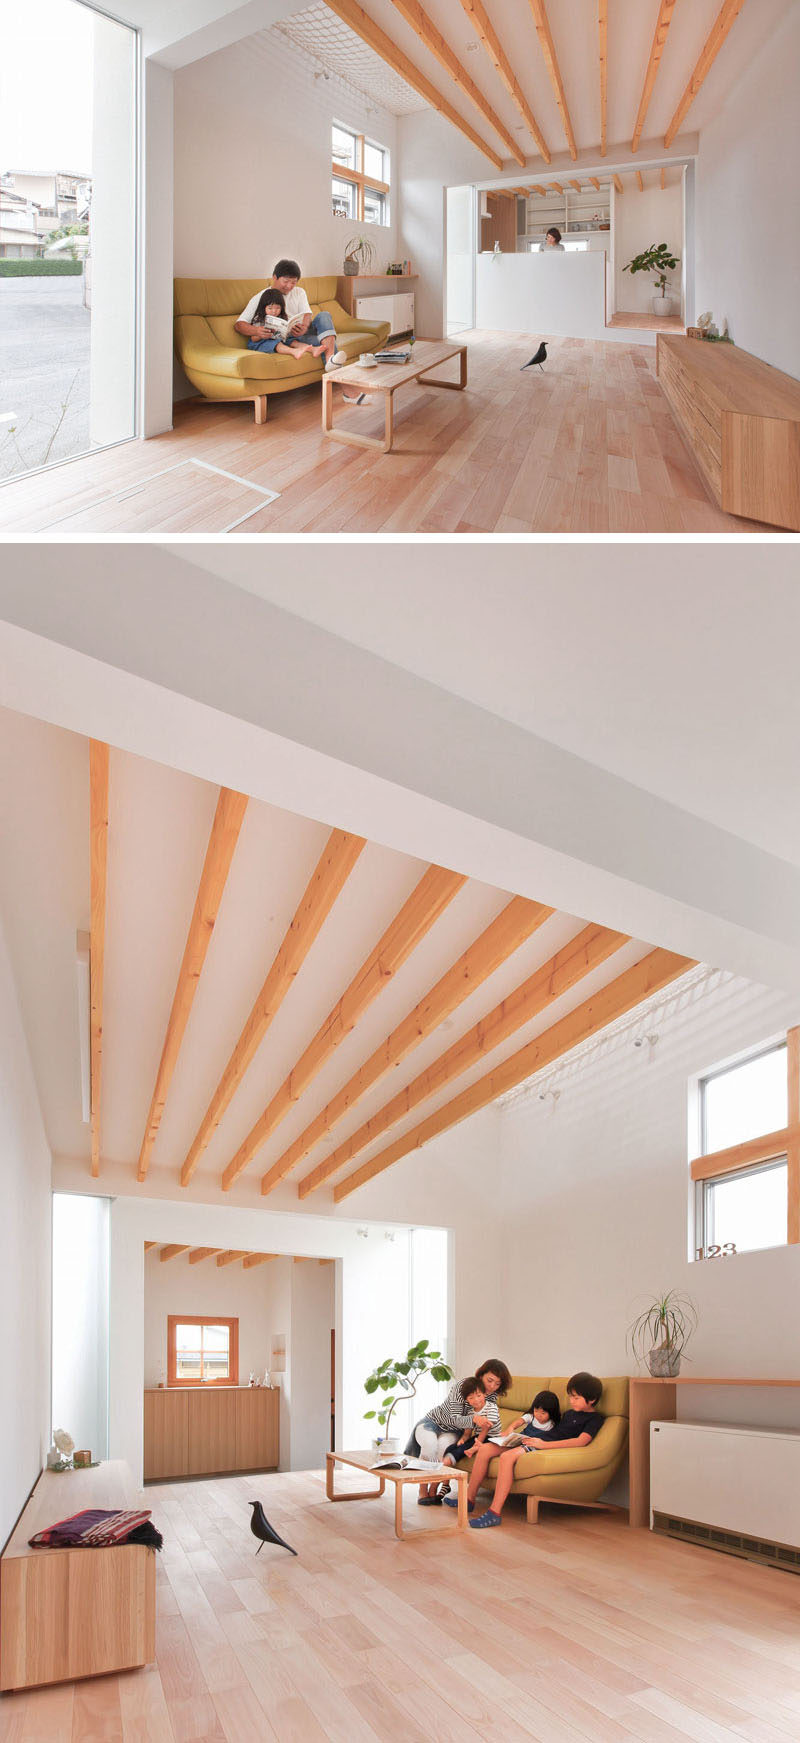 This house in Japan has a bright interior with white walls and light wood, plus there's a built-in, lofted hang-out net for the children to relax in.